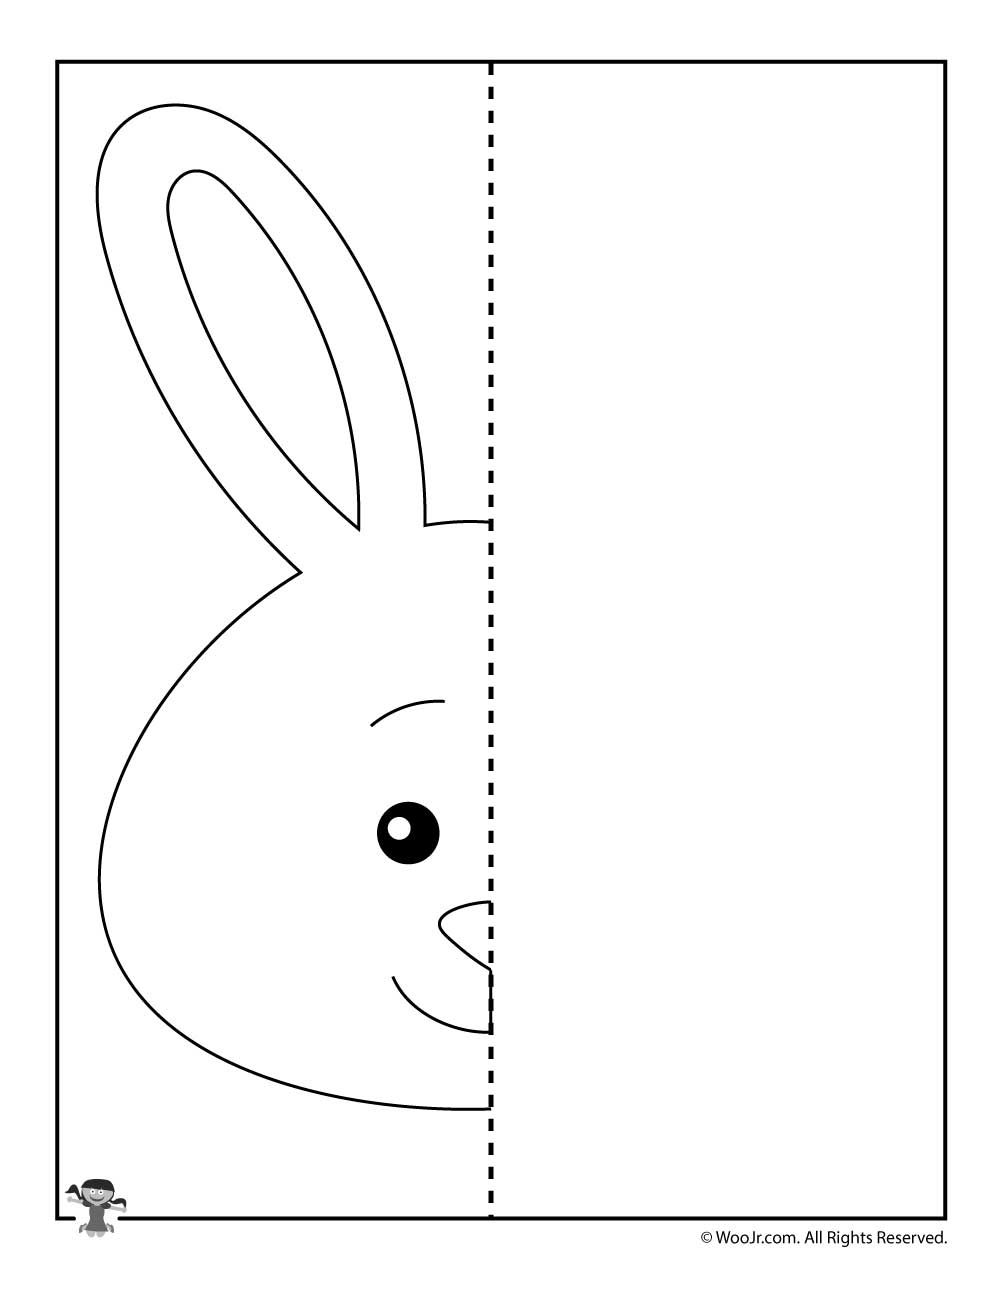 Easter And Spring Finish The Picture Drawing Worksheets Woo Jr Kids Activities Art Worksheets Kindergarten Art Finish The Drawing Worksheets Art worksheet for kids